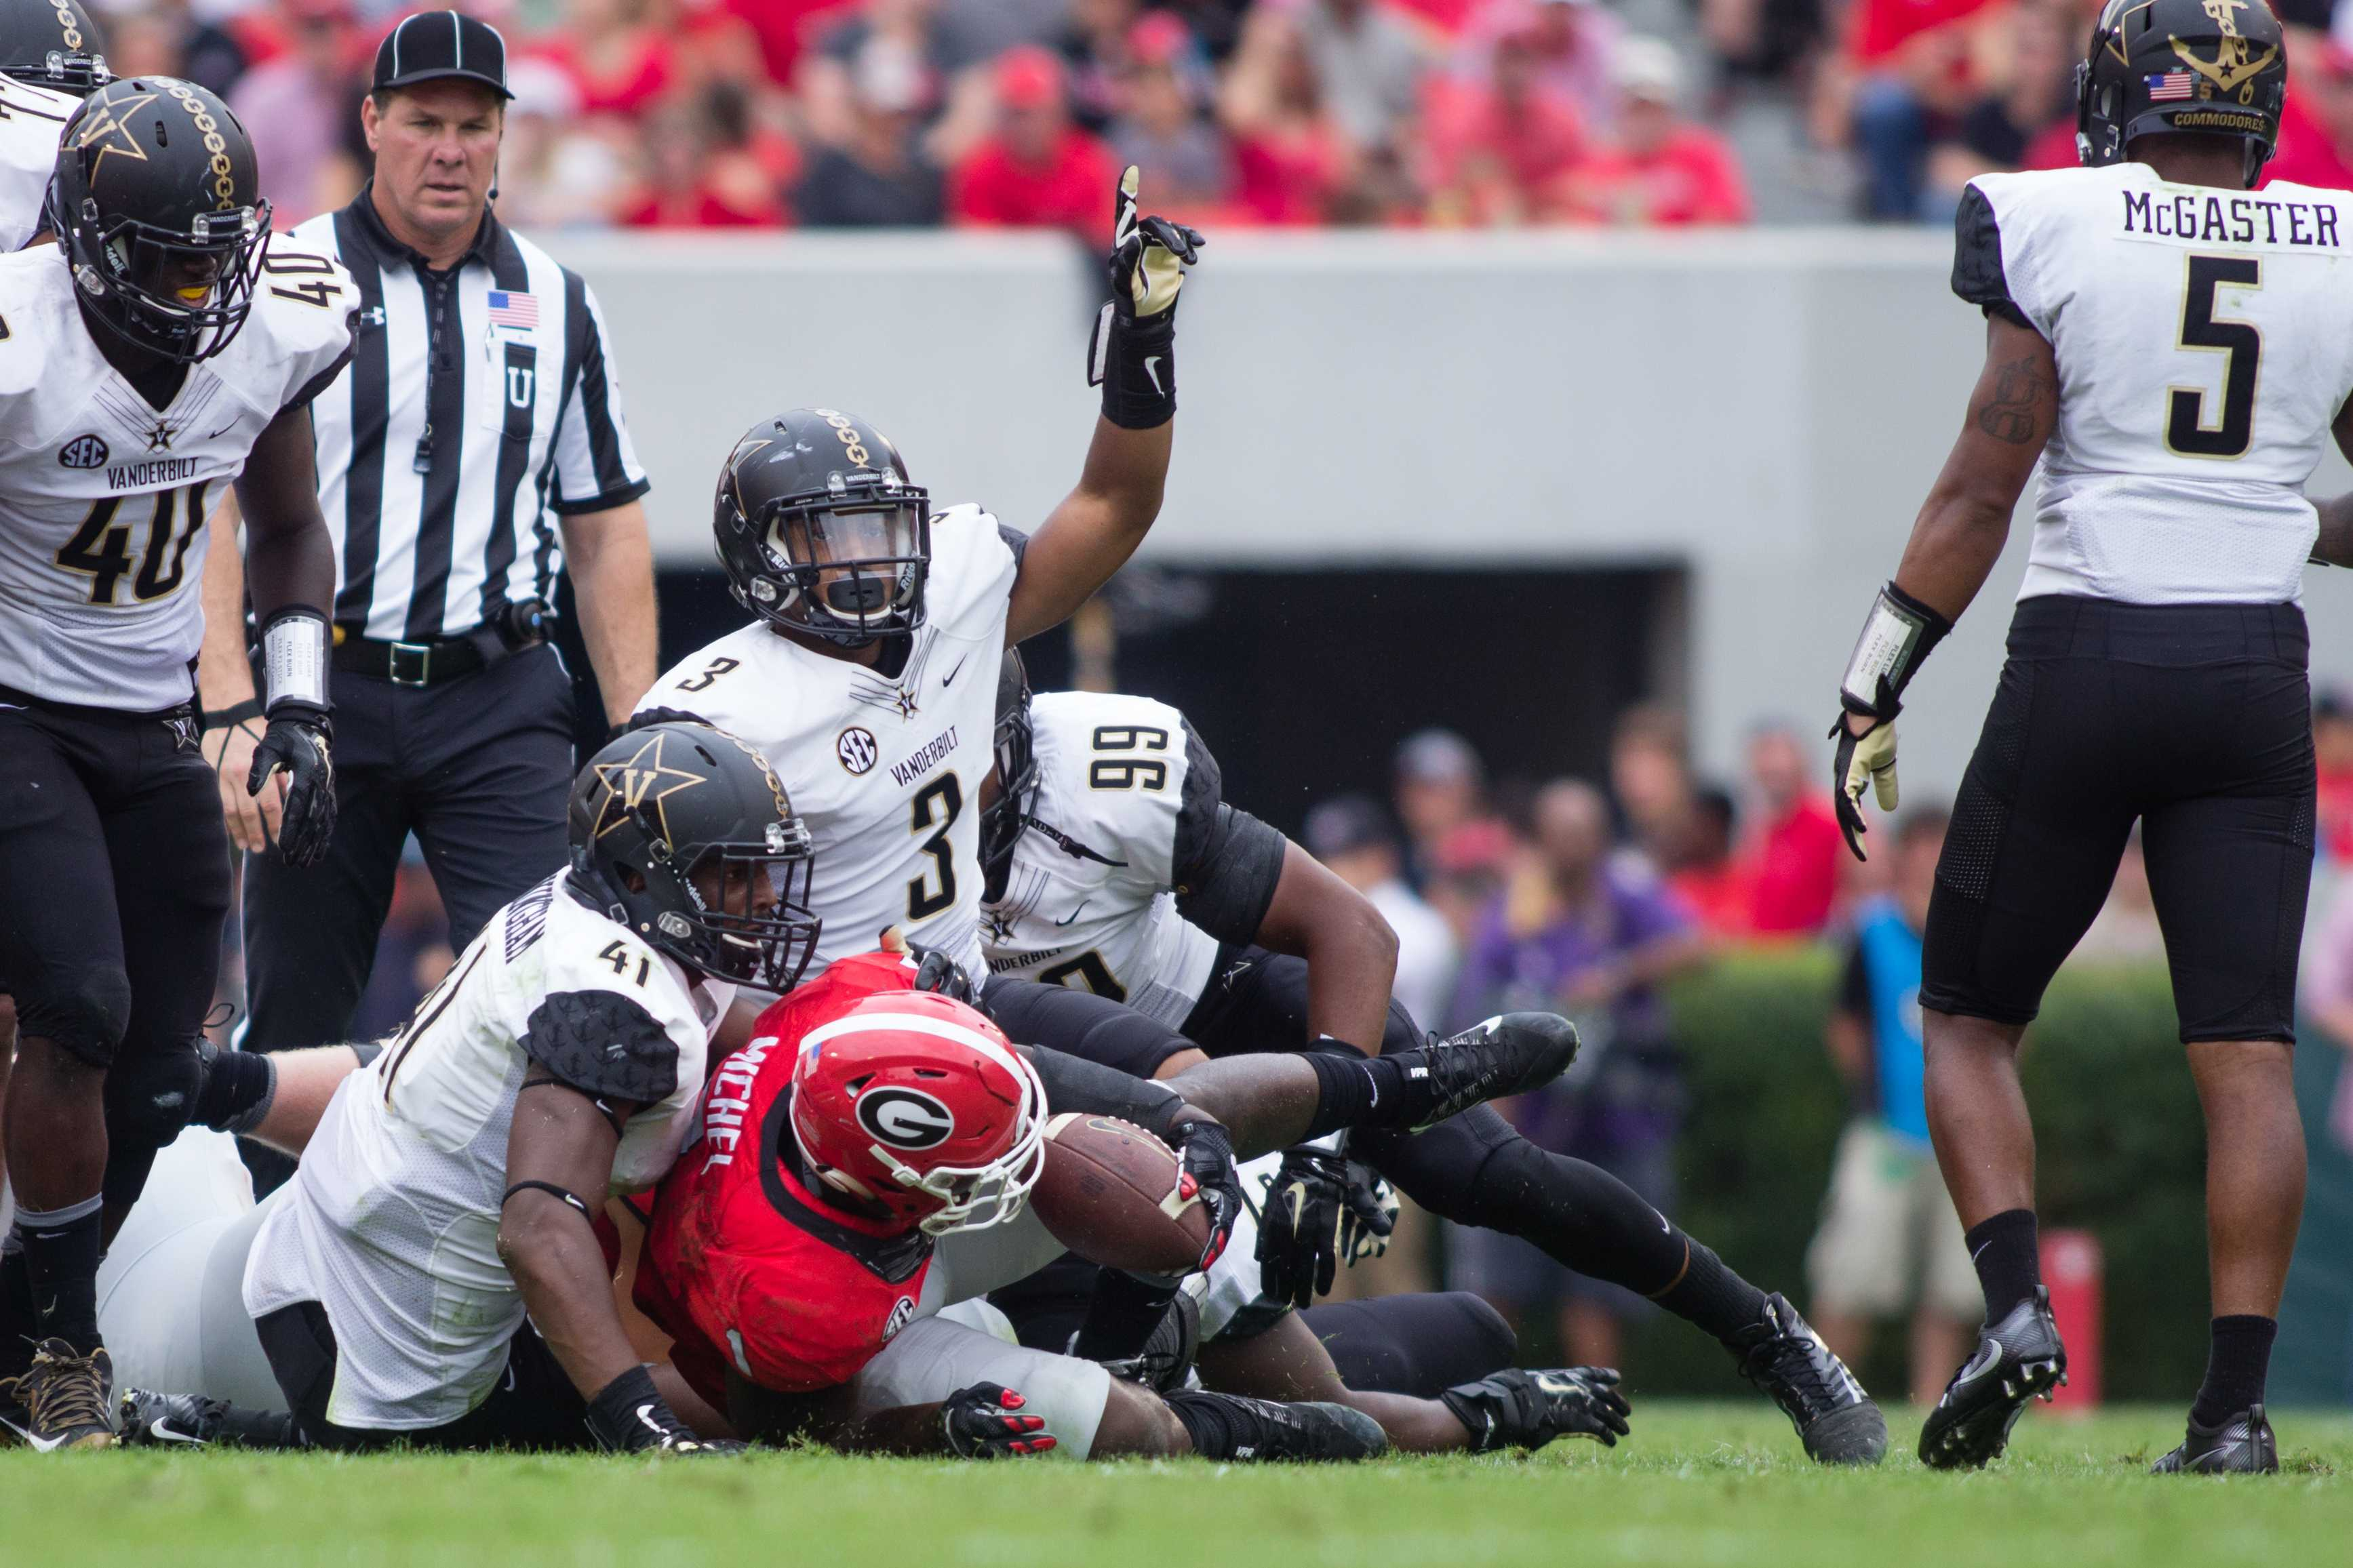 October 15th, 2016 – The Commodores defense makes a stop during their 17-16 win against the University of Georgia in Sanford Stadium Saturday afternoon. Photo by Blake Dover.